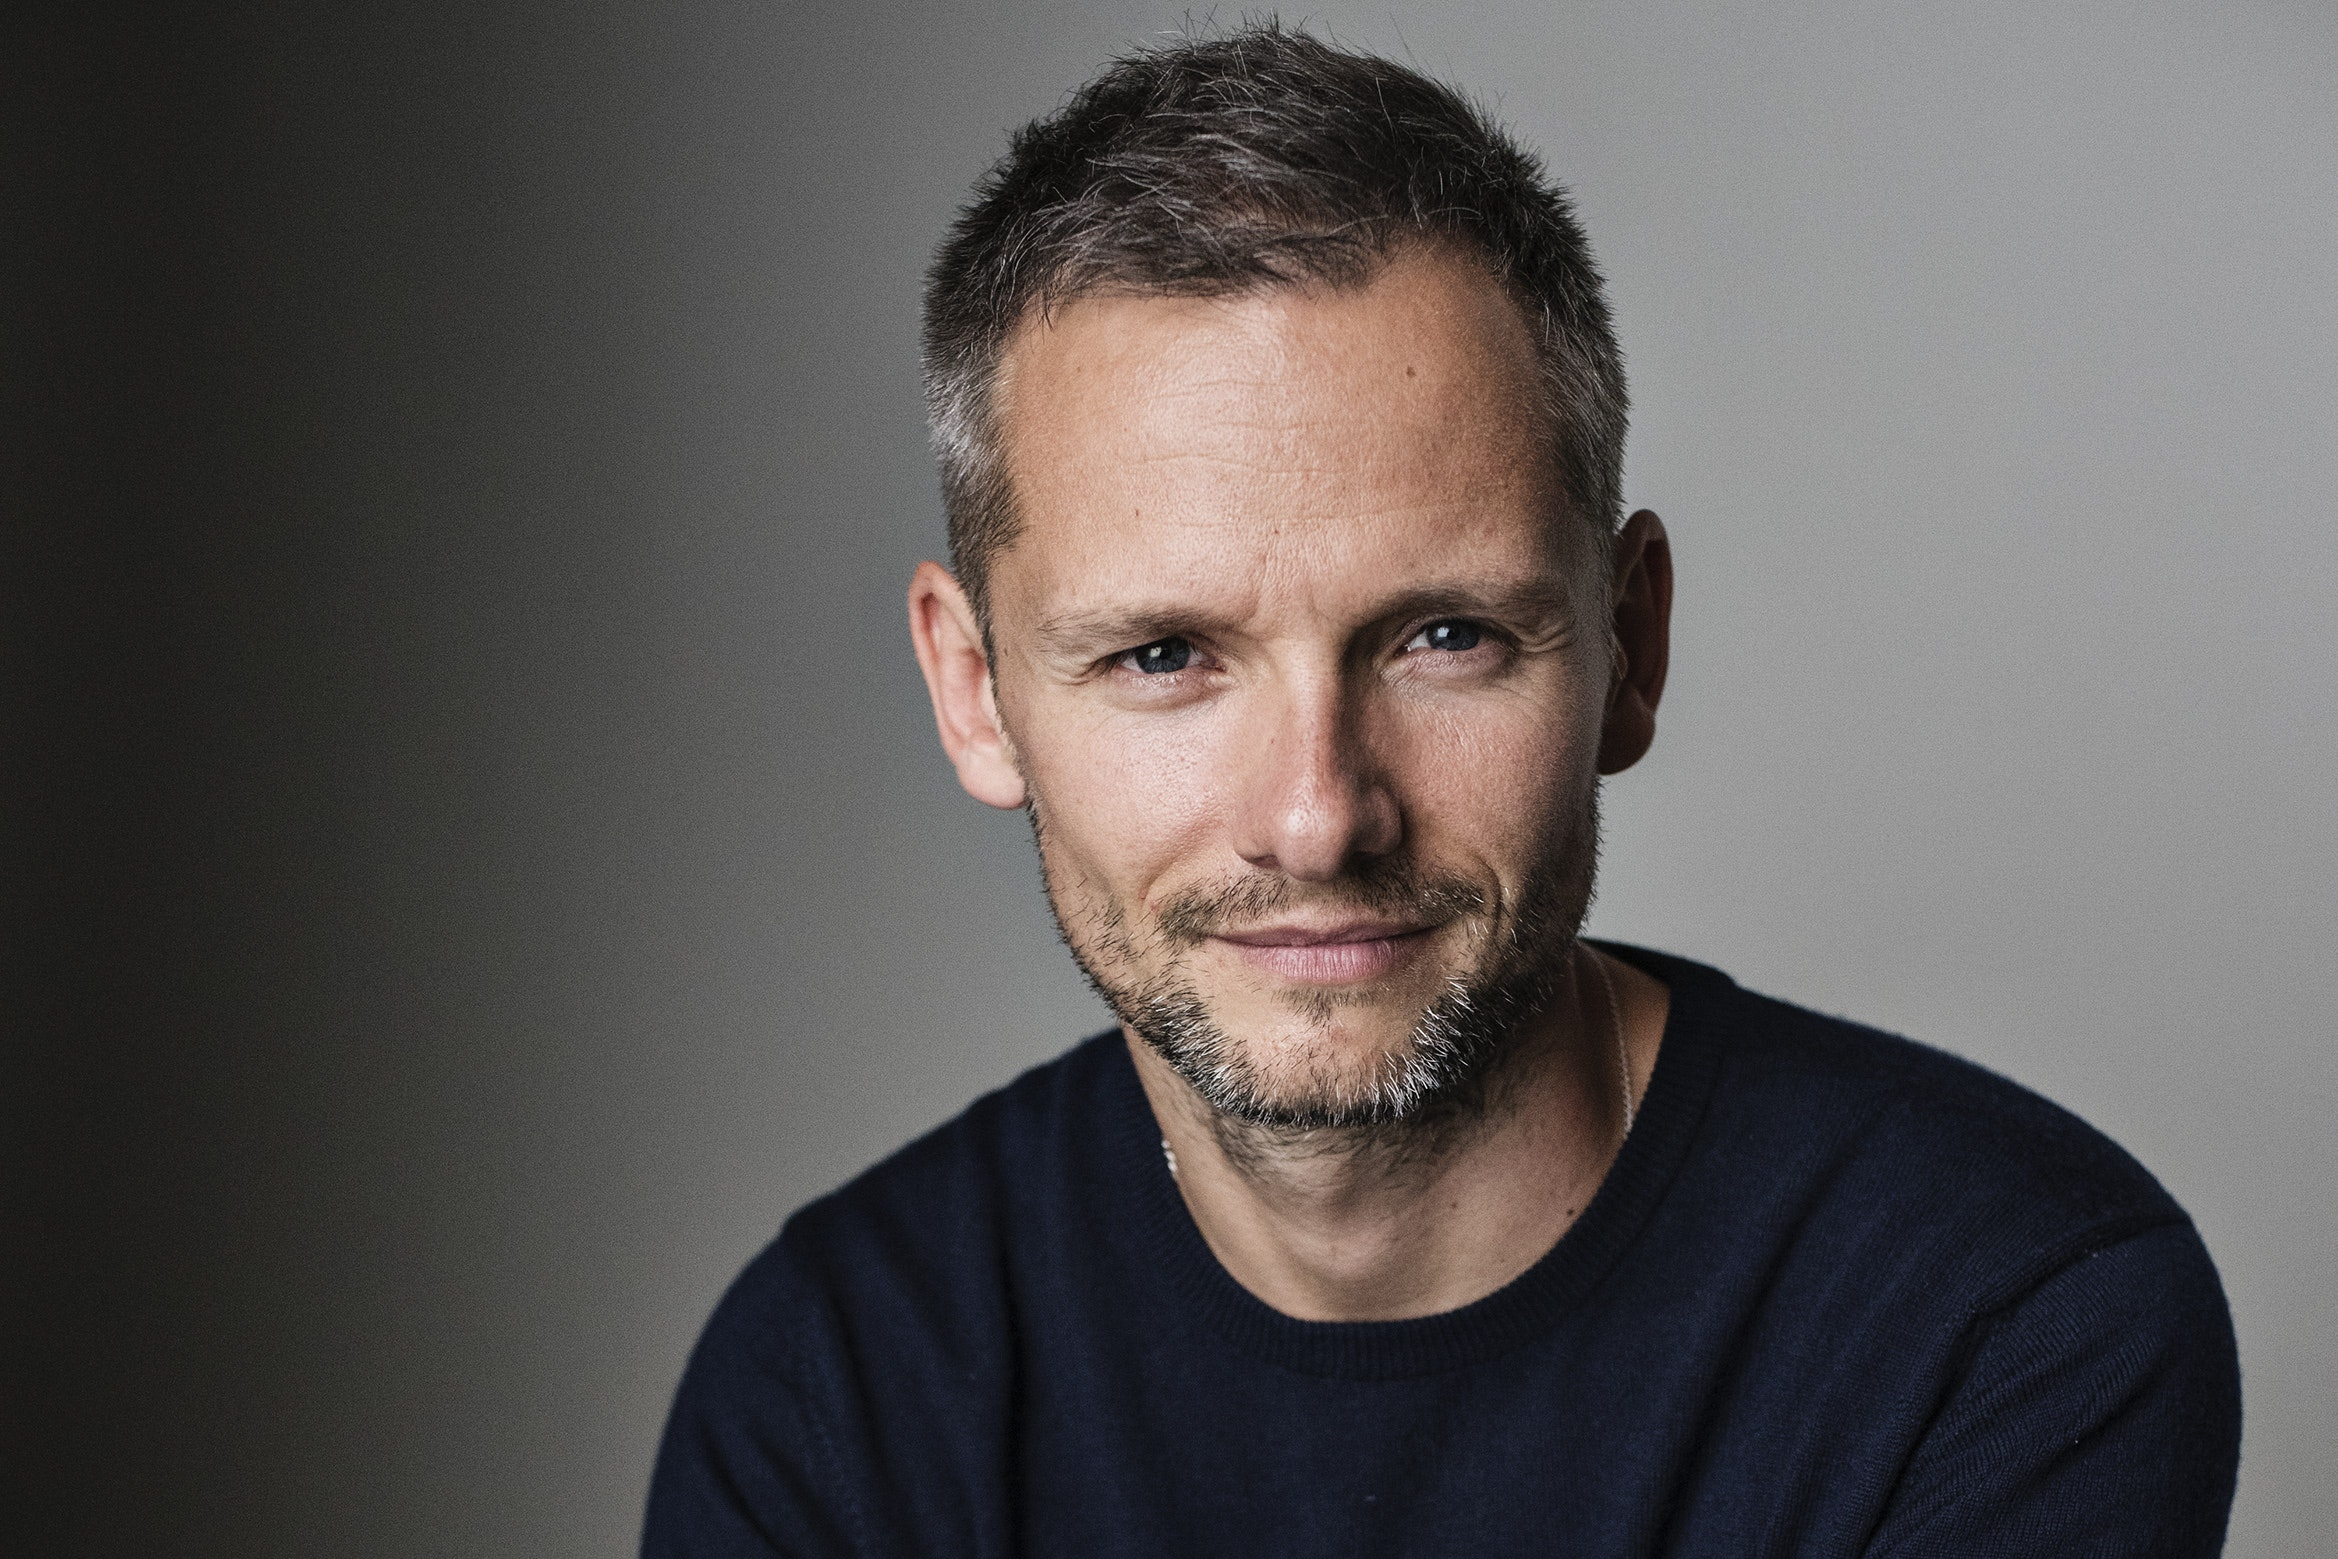 Former EastEnders star Jack Ryder heads to Holby City